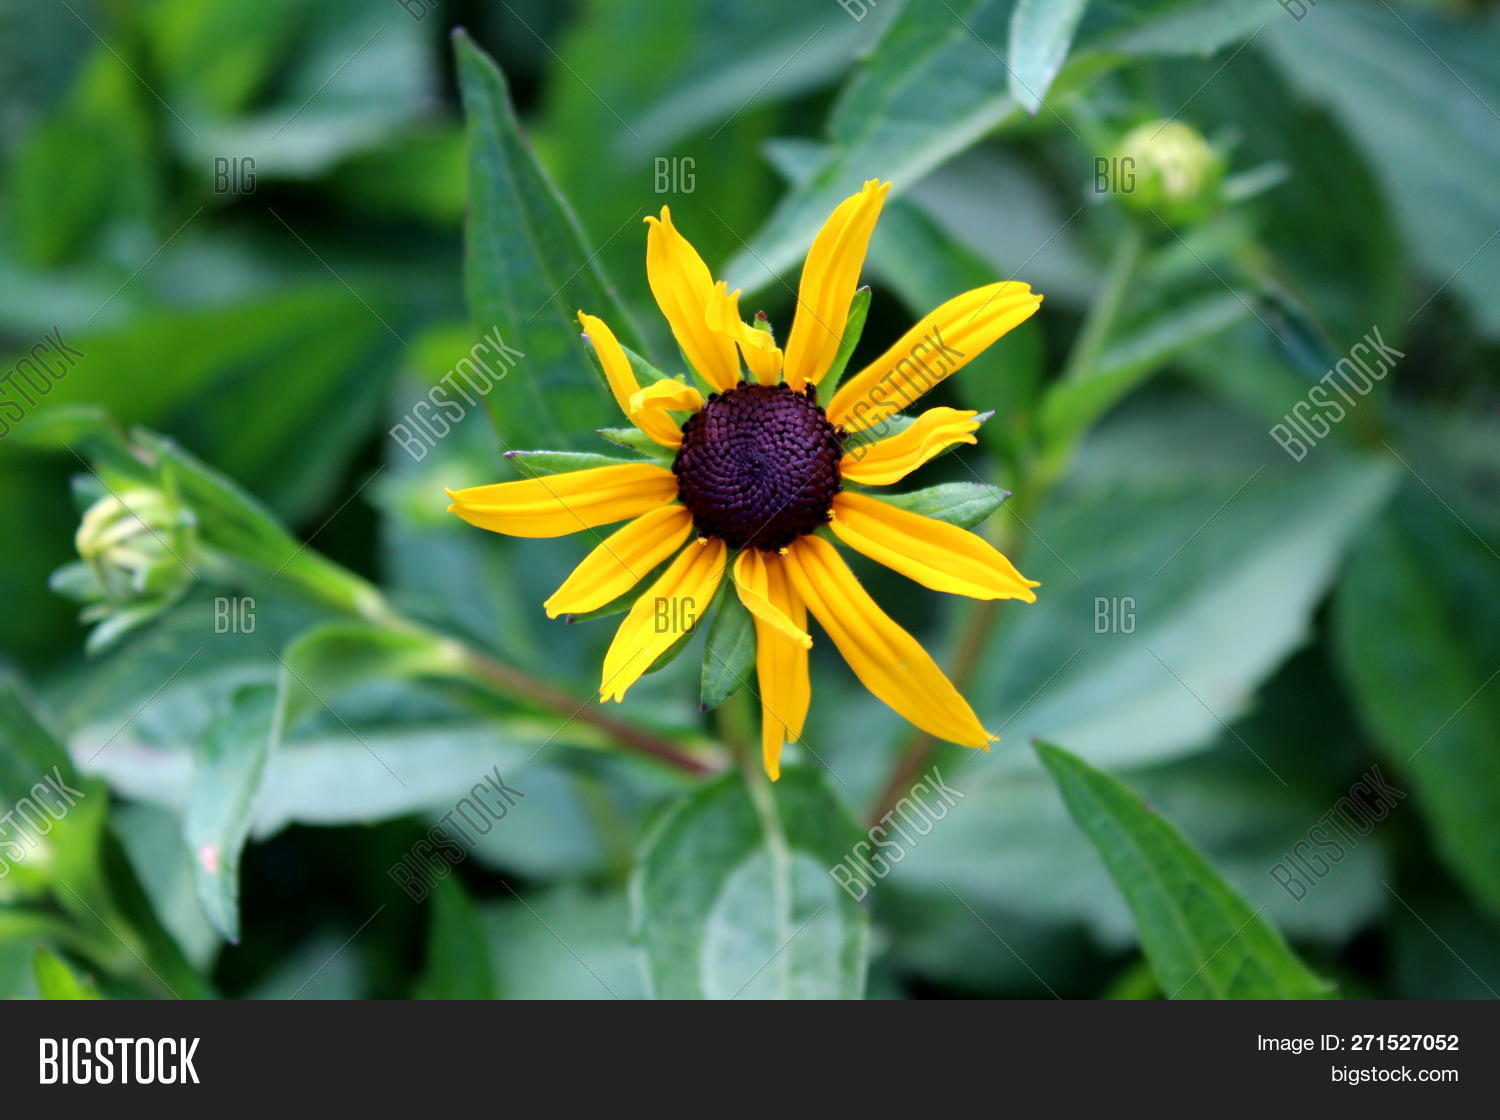 Black Eyed Susan Image Photo Free Trial Bigstock The most common brown yellow daisy material is glass. bigstock